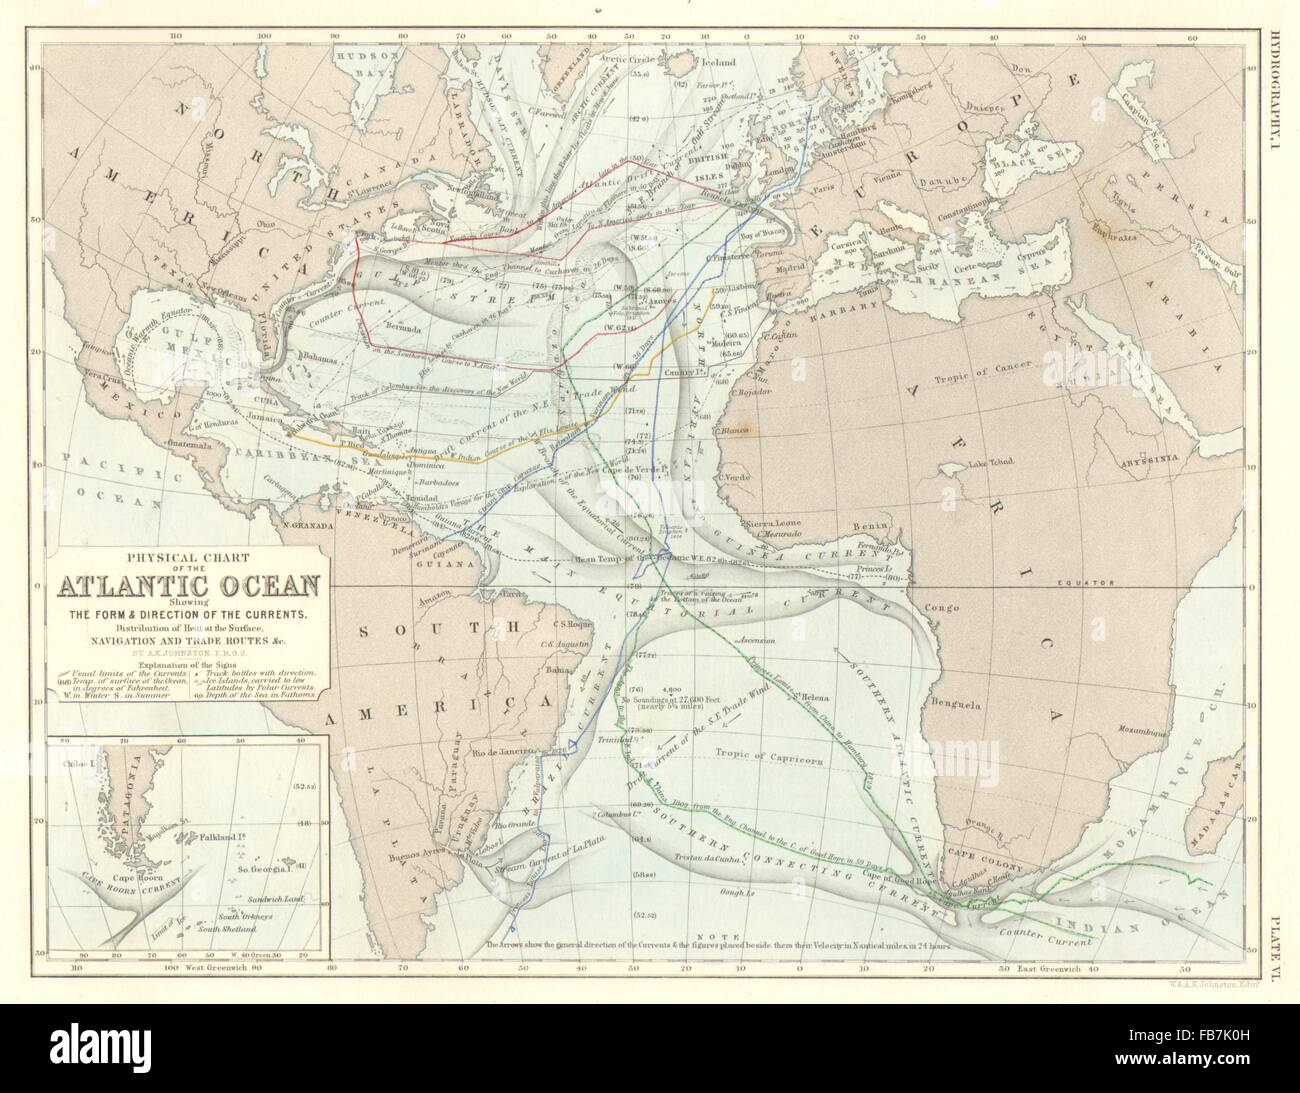 ATLANTIC OCEAN Physical chart Currents Temperature Trade routes